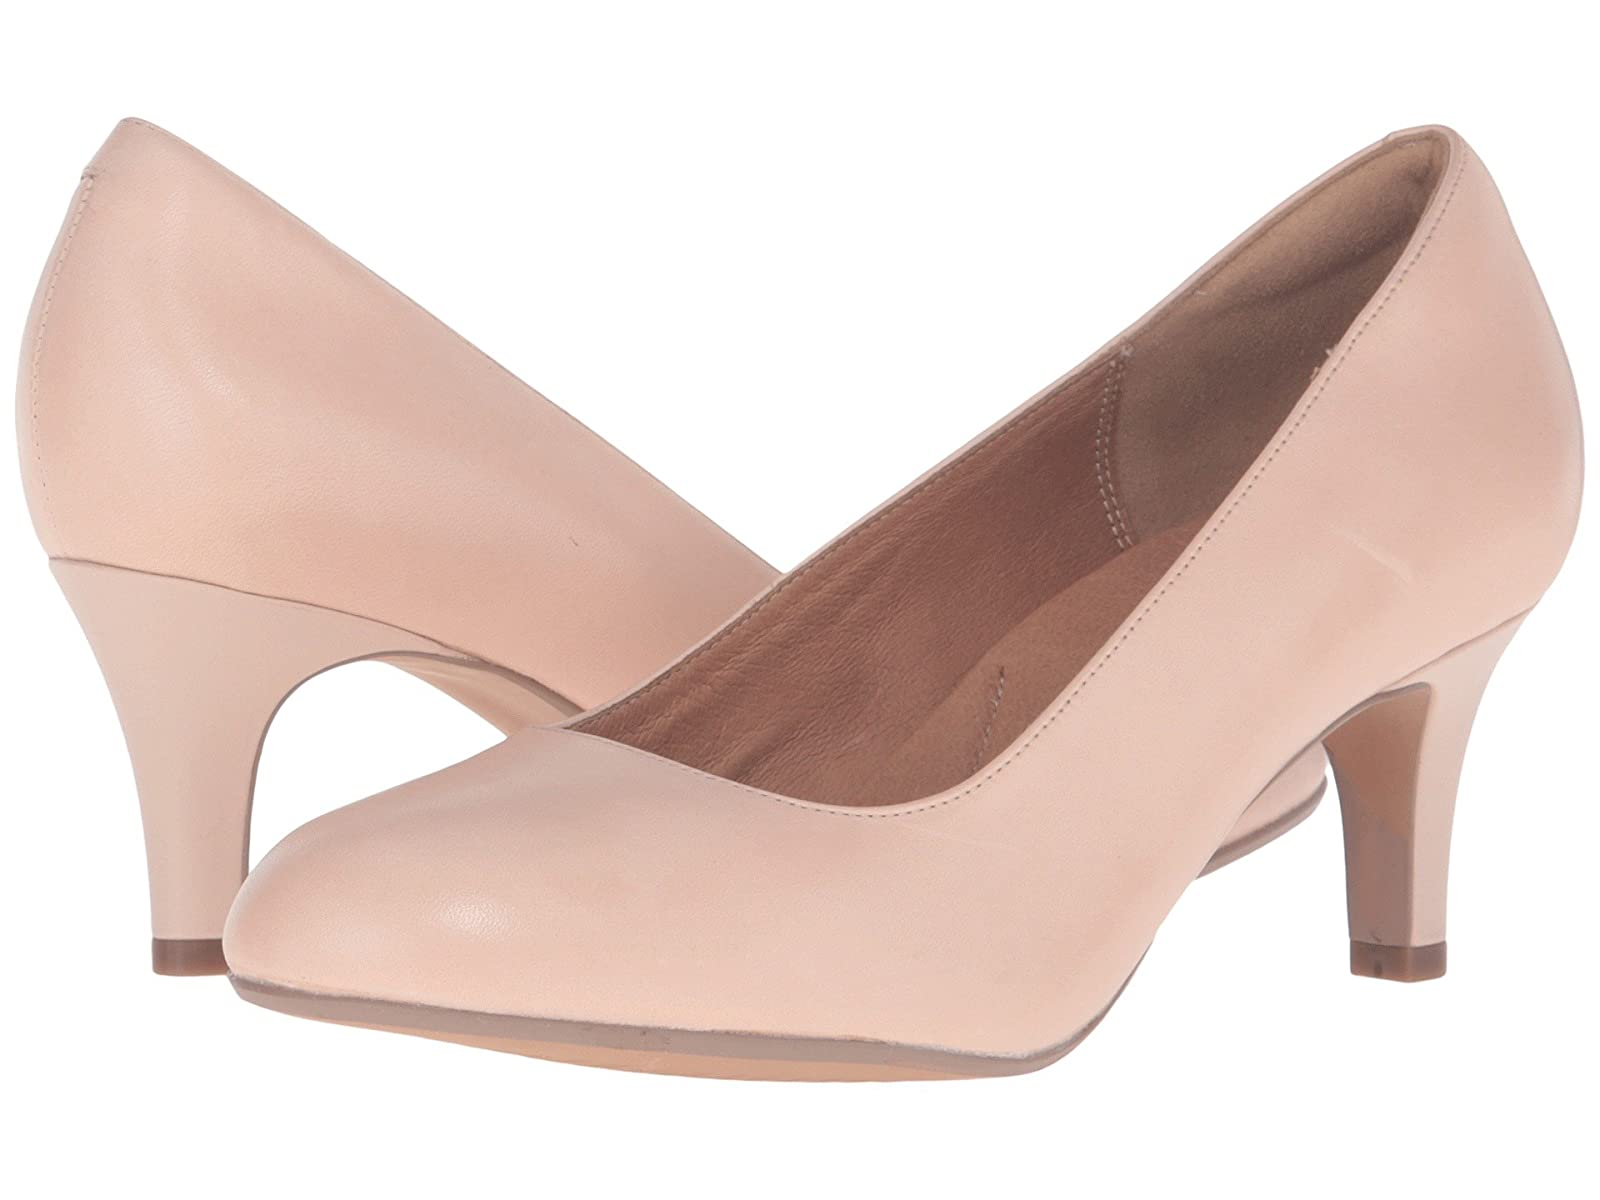 Clarks Heavenly HeartCheap and distinctive eye-catching shoes